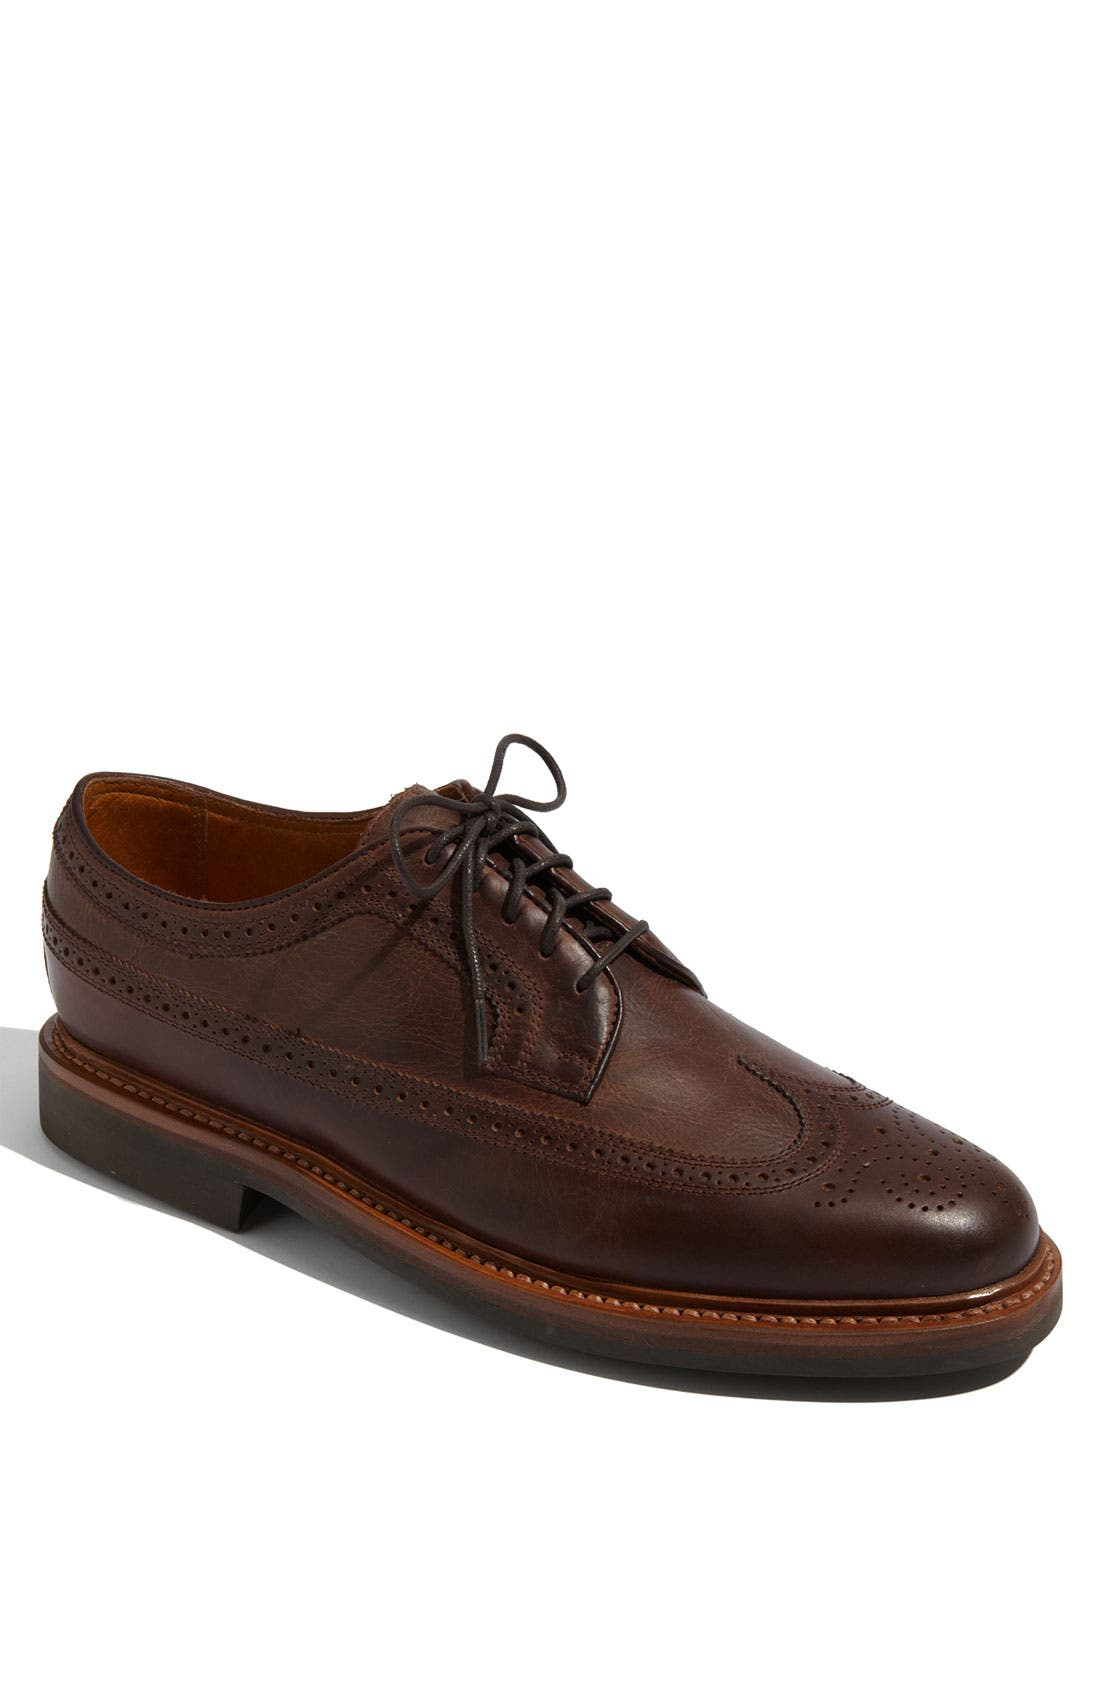 Main Image - Florsheim 'Haviland' Oxford